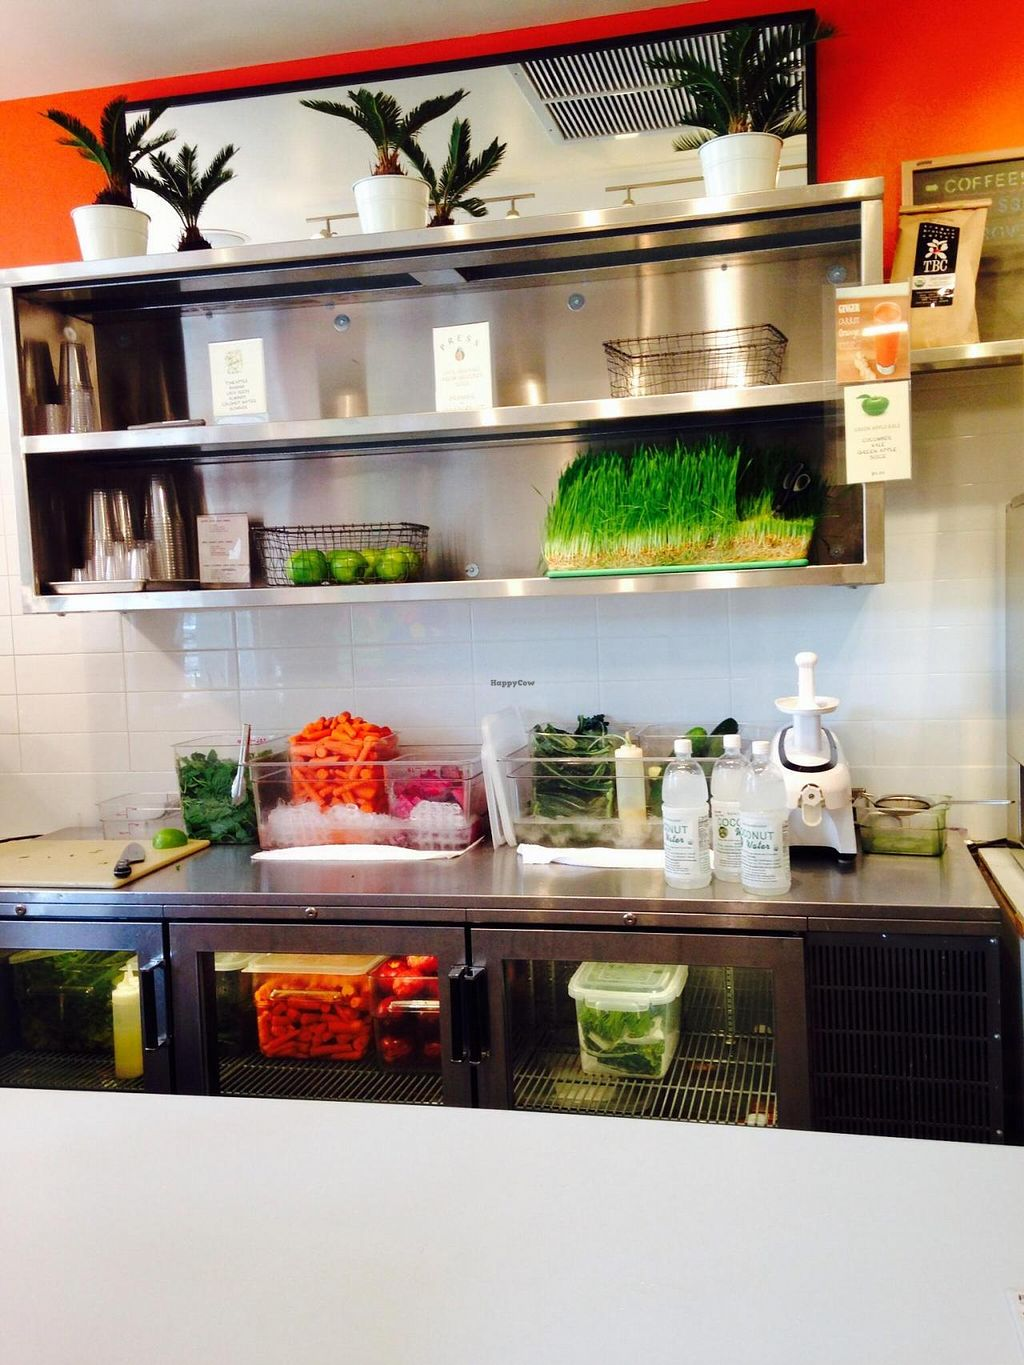 """Photo of CLOSED: PRESS  by <a href=""""/members/profile/cookiem"""">cookiem</a> <br/>Live wheat grass! <br/> July 24, 2014  - <a href='/contact/abuse/image/47333/74982'>Report</a>"""